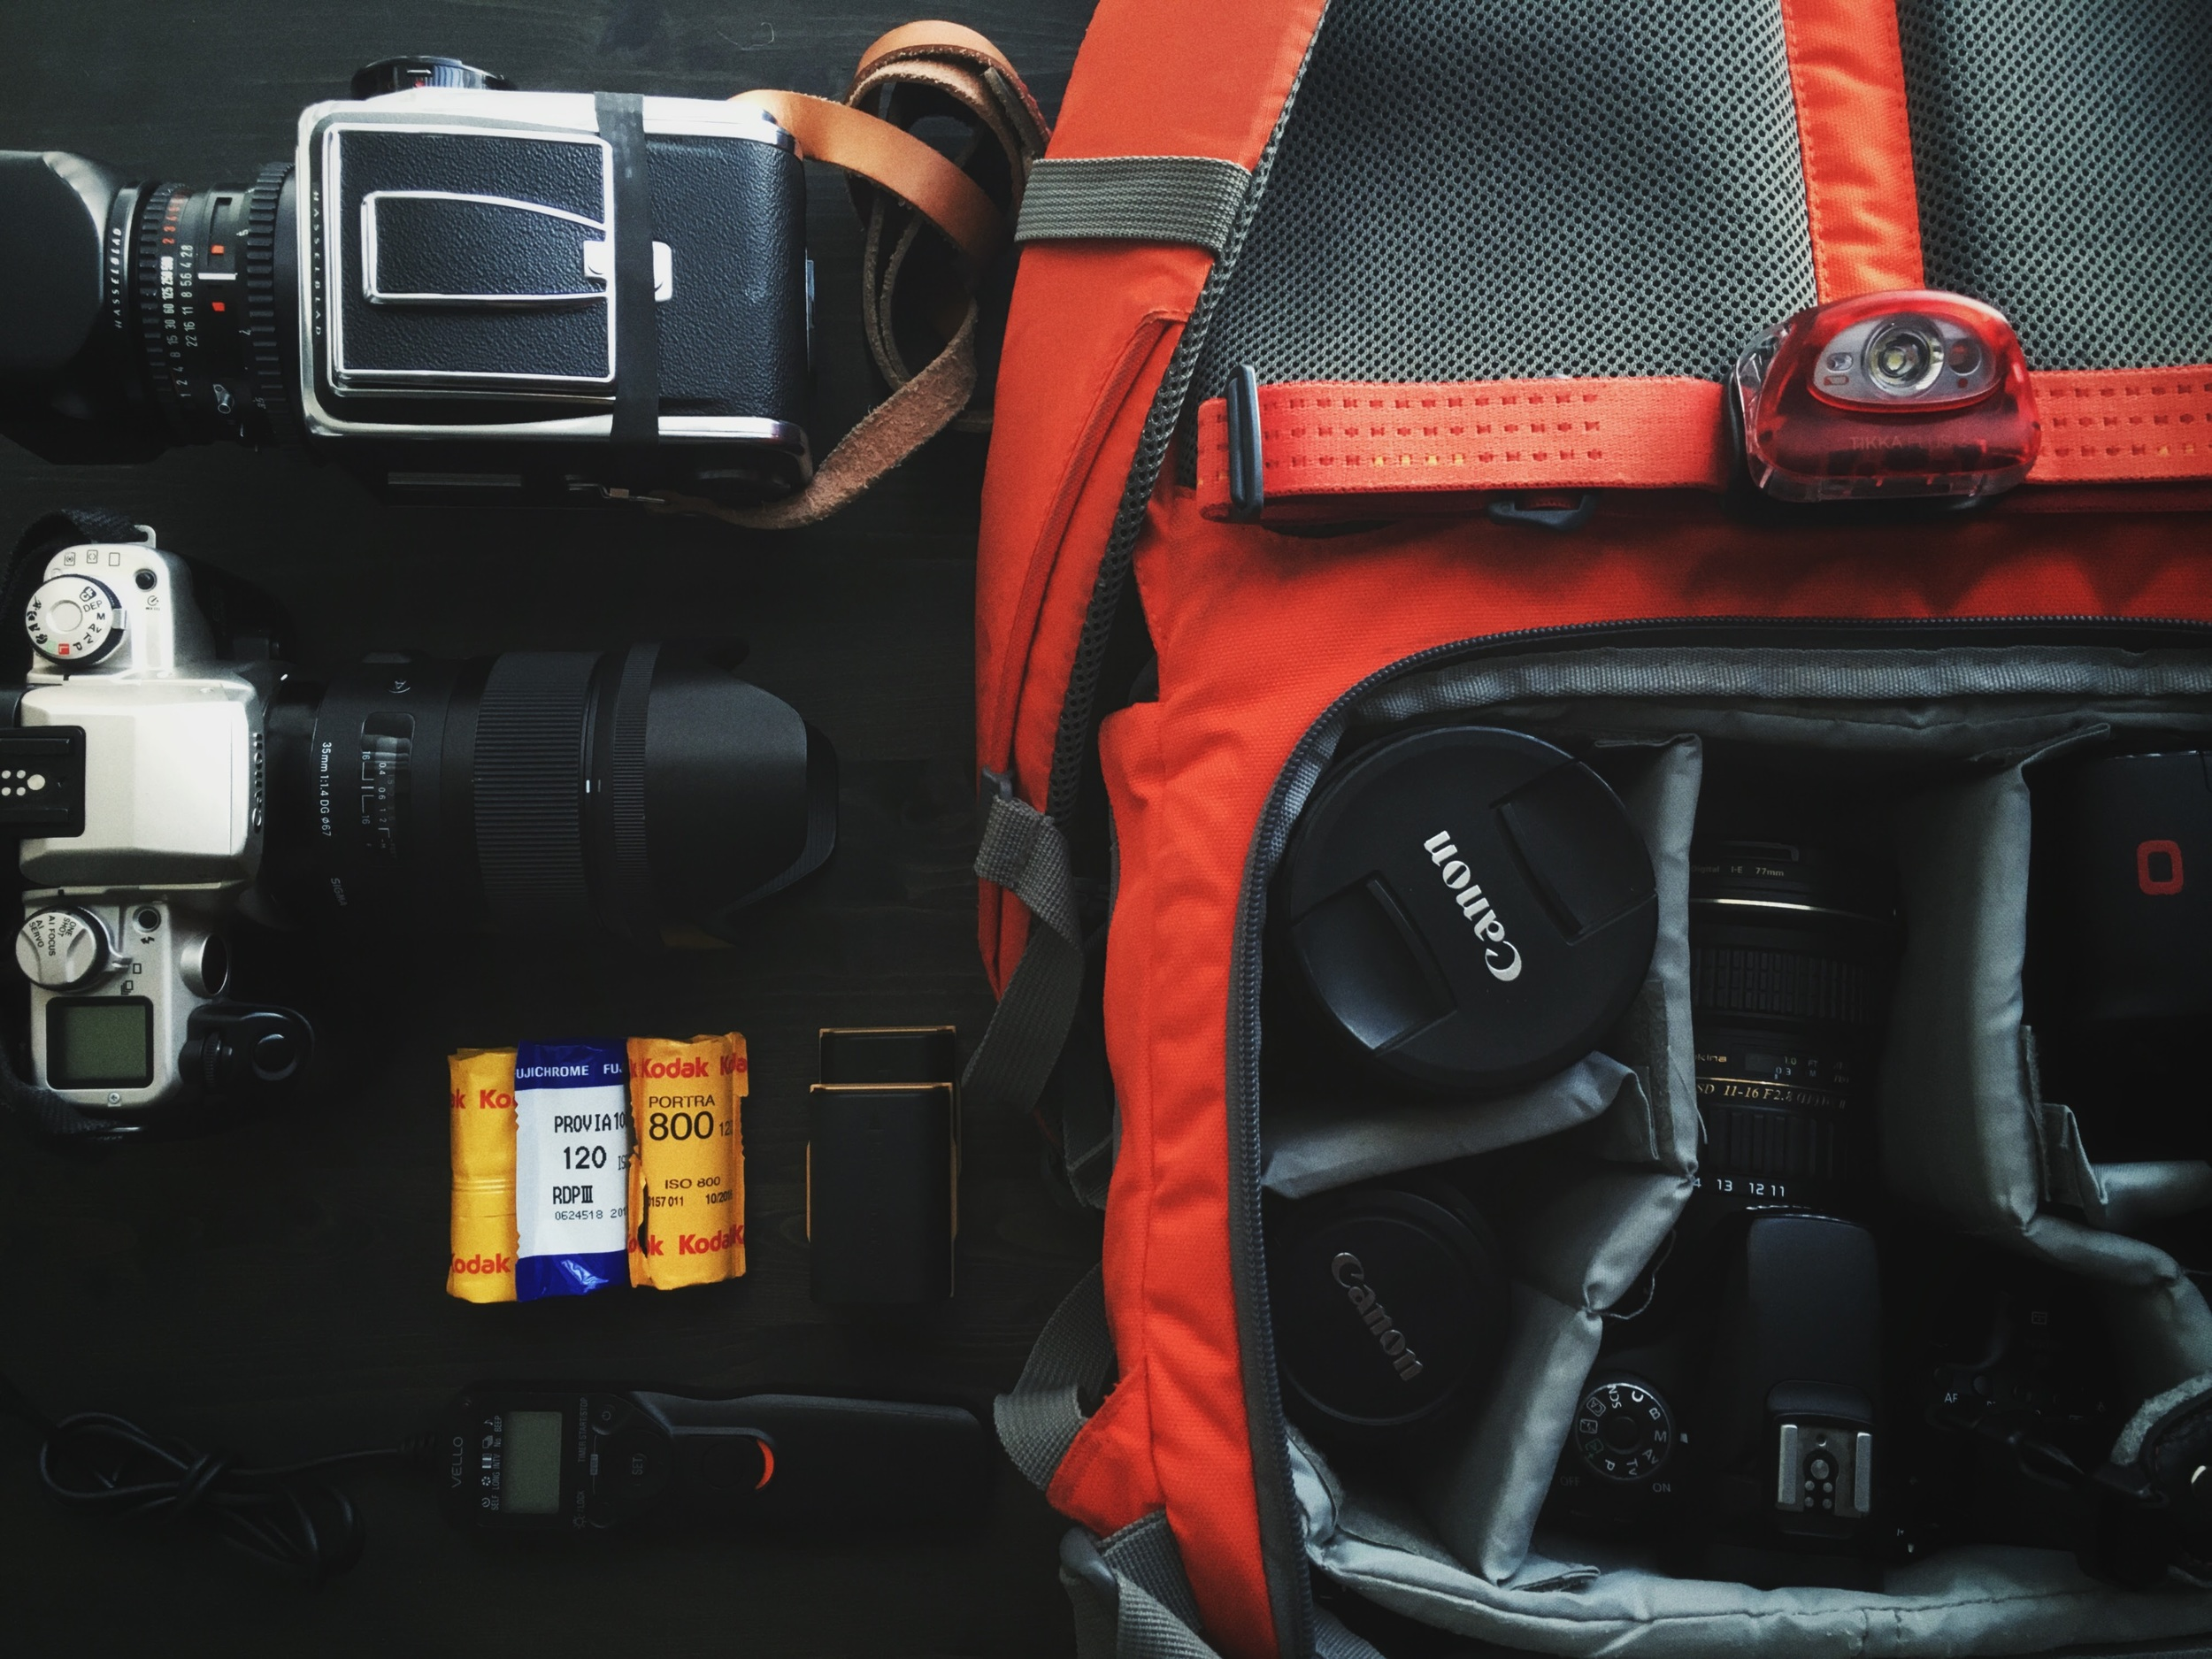 I have trouble deciding which camera to leave behind so I often take as many as I can carry.